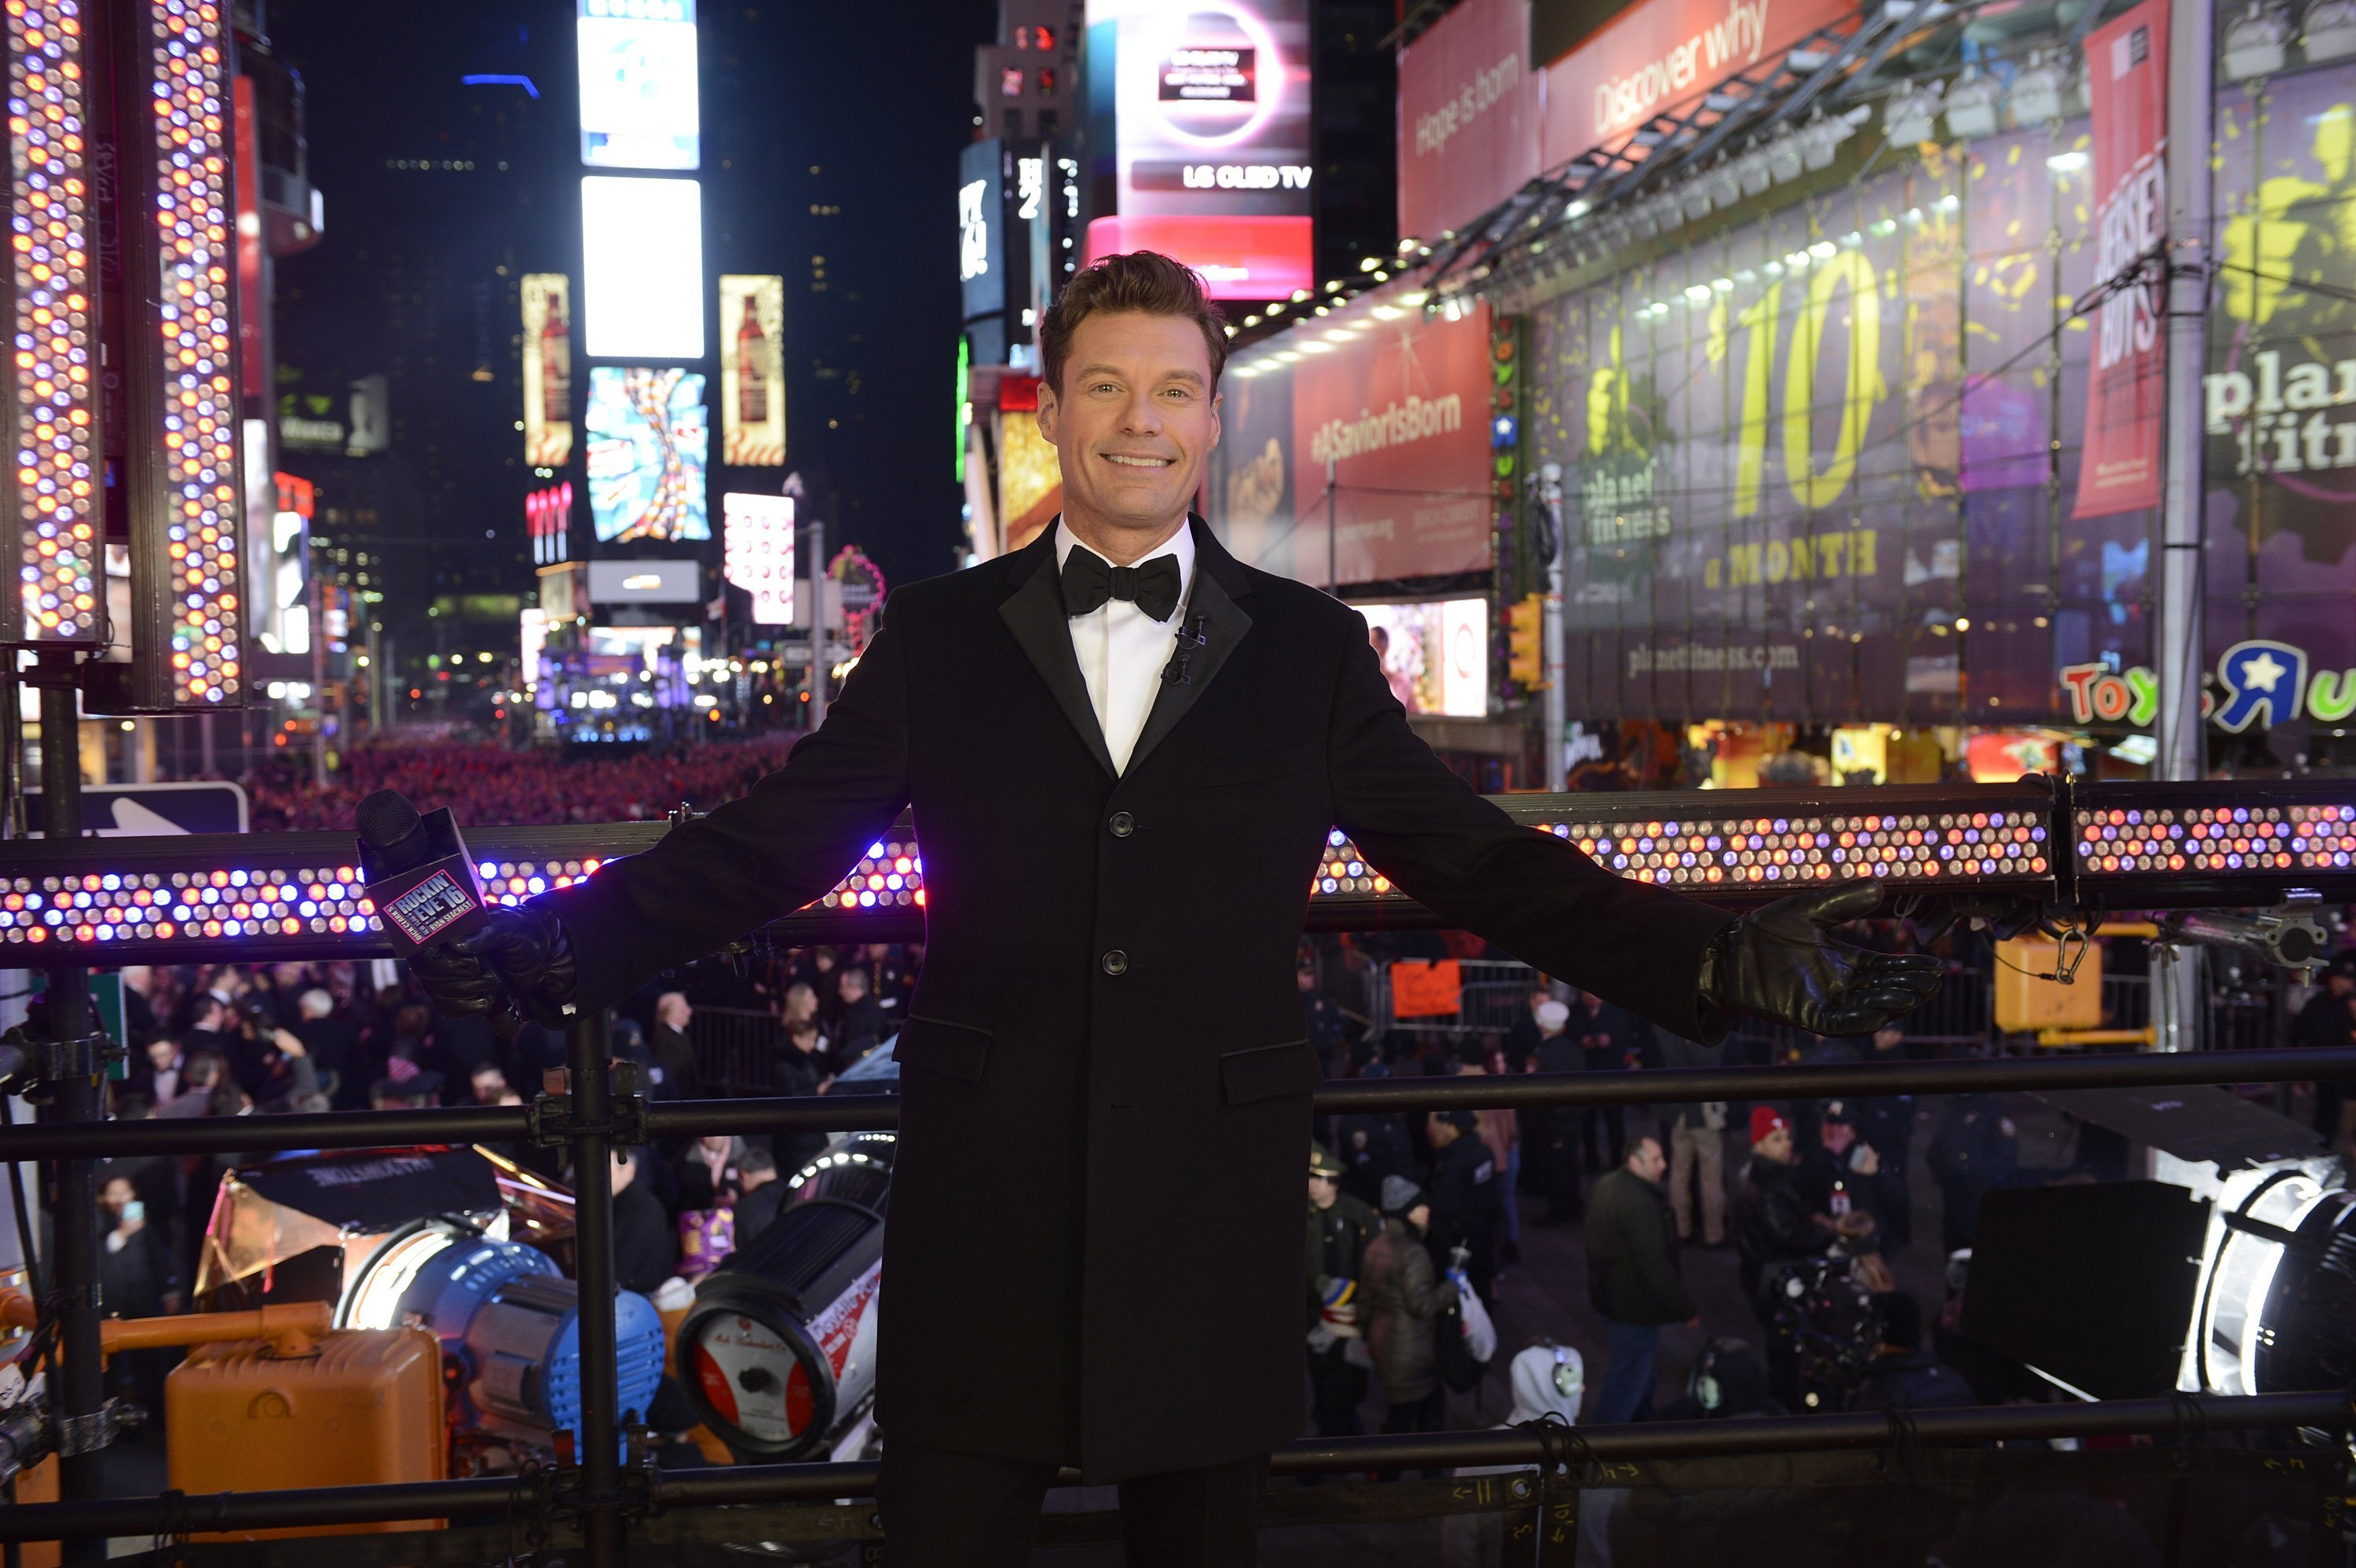 Ryan Seacrest Officially Joins Kelly Ripa As Co-Host Of 'Live'